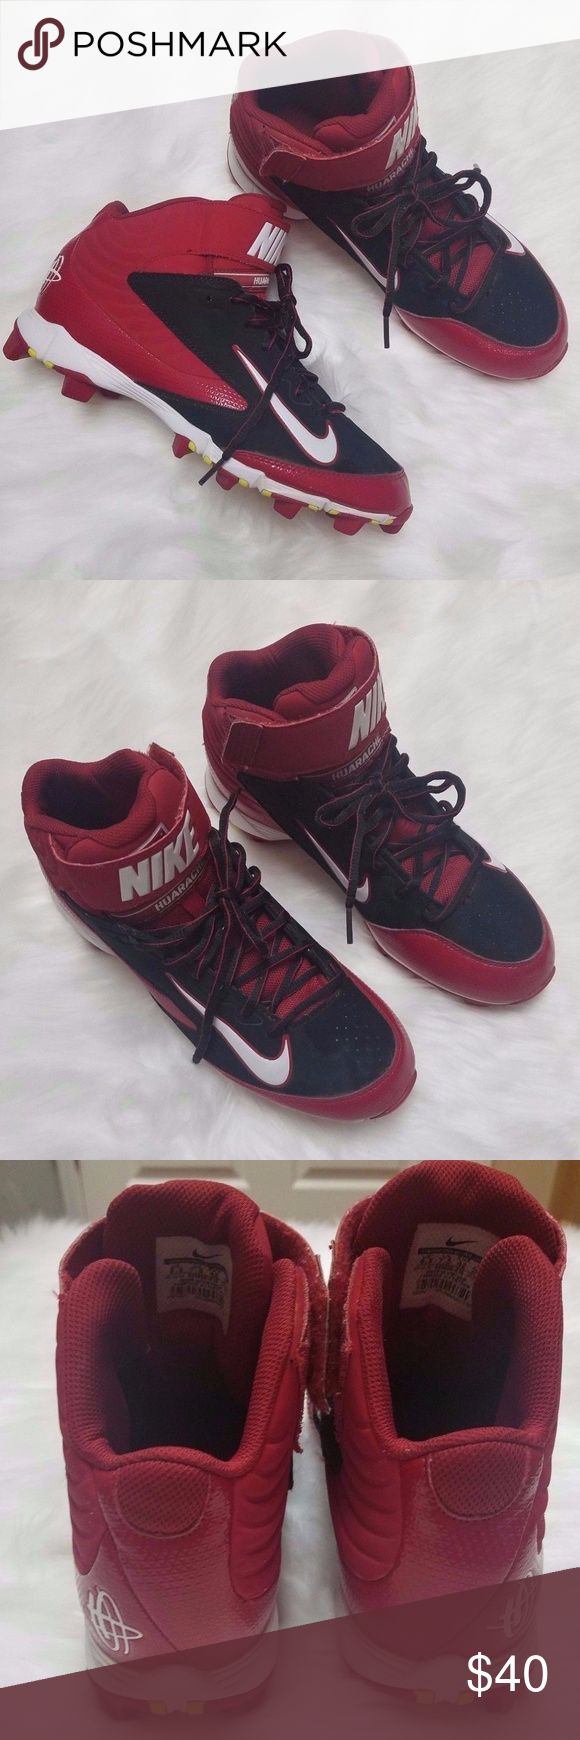 NIKE HUARACHE High Top Trainer Athletic Cleats NIKE HUARACHE red/black high top trainer athletic cleats. Men's size 8.5. Excellent used condition! Nike Shoes Athletic Shoes